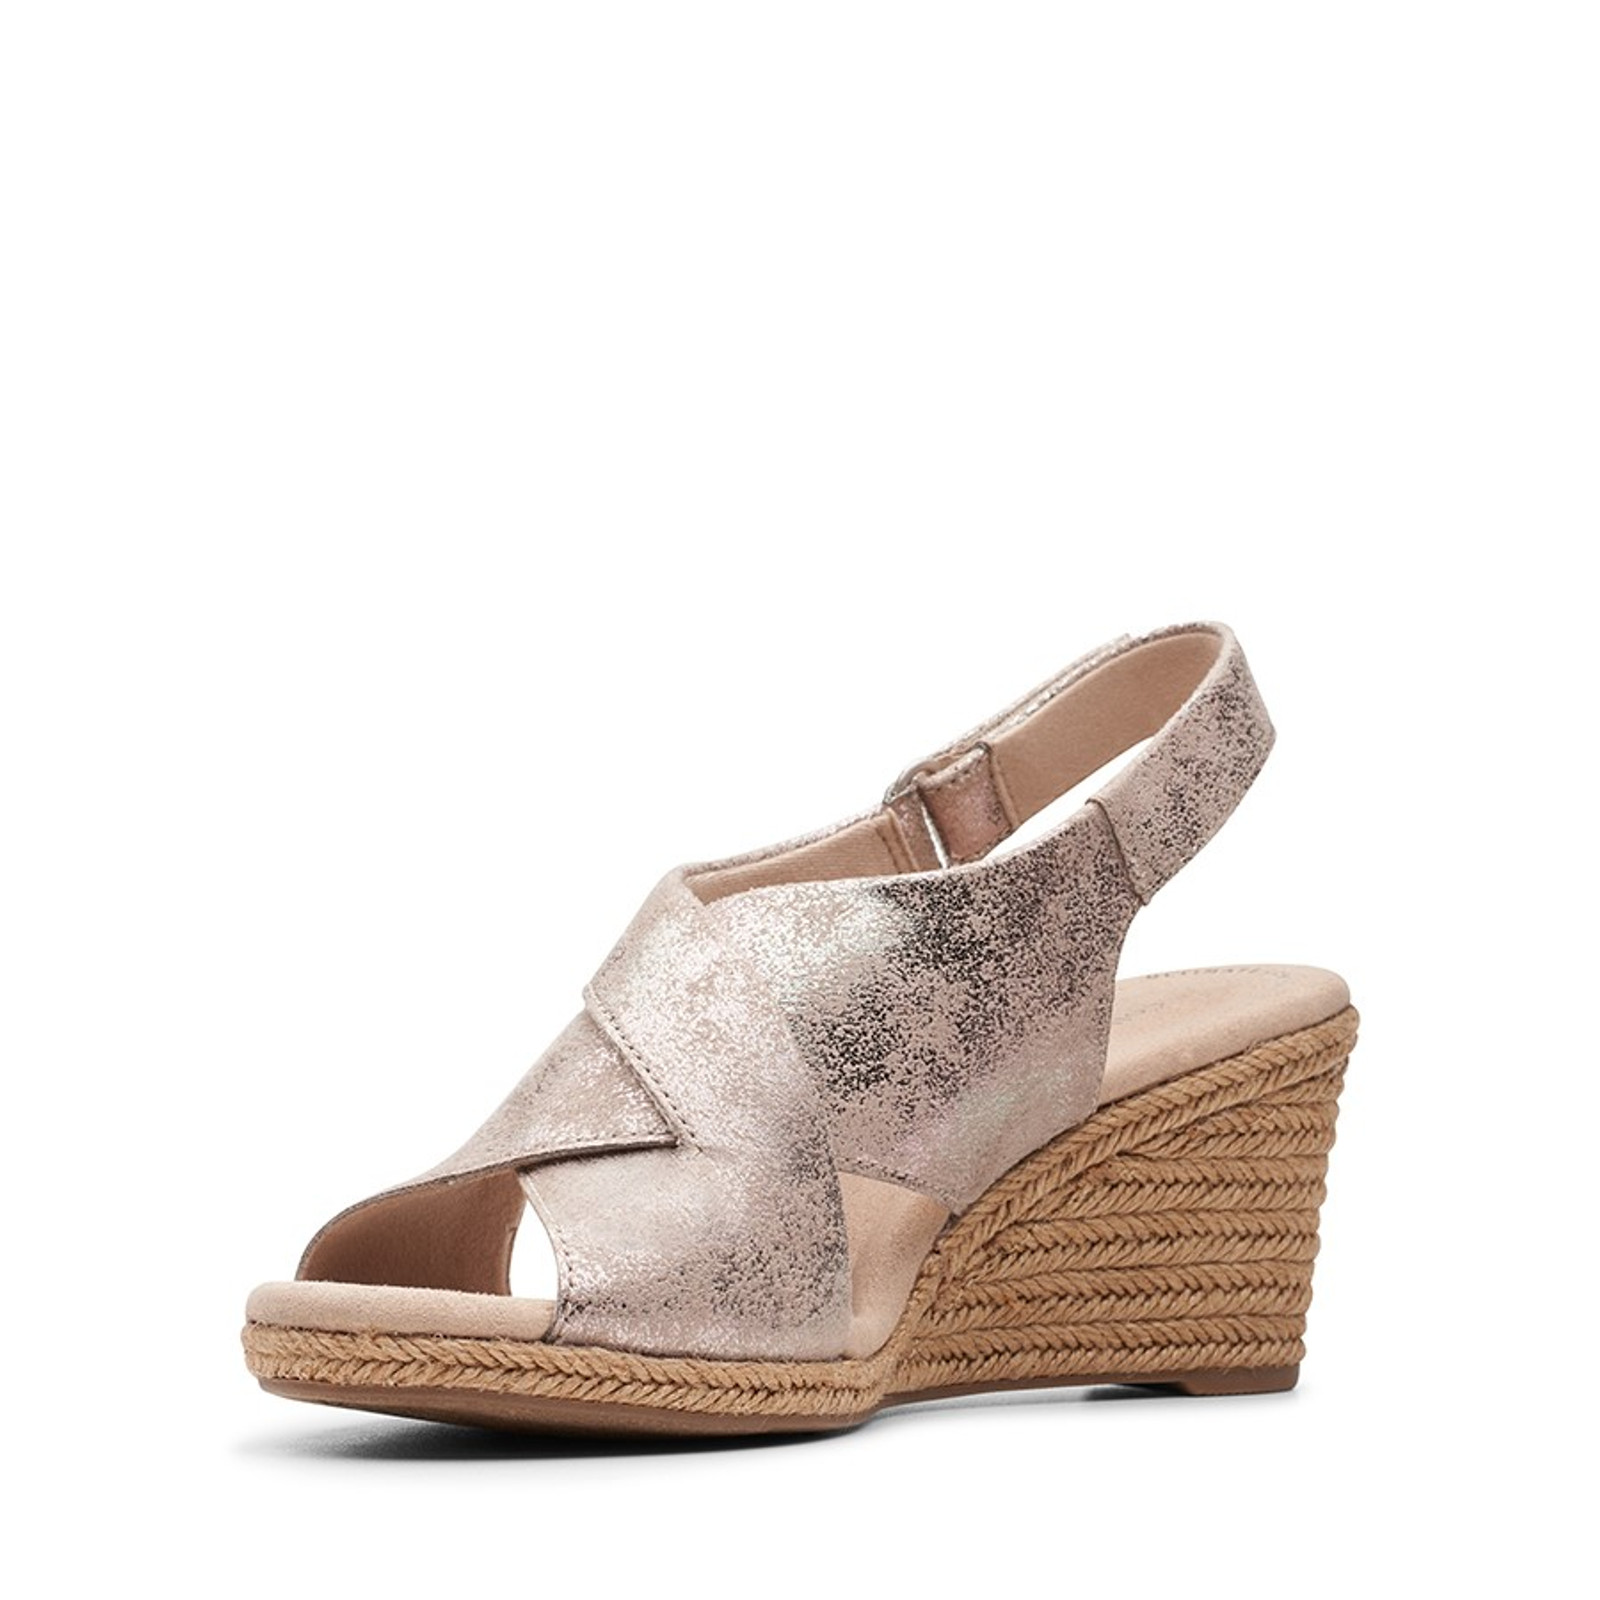 Clarks Womens LAFLEY ALAINE Pewter Leather